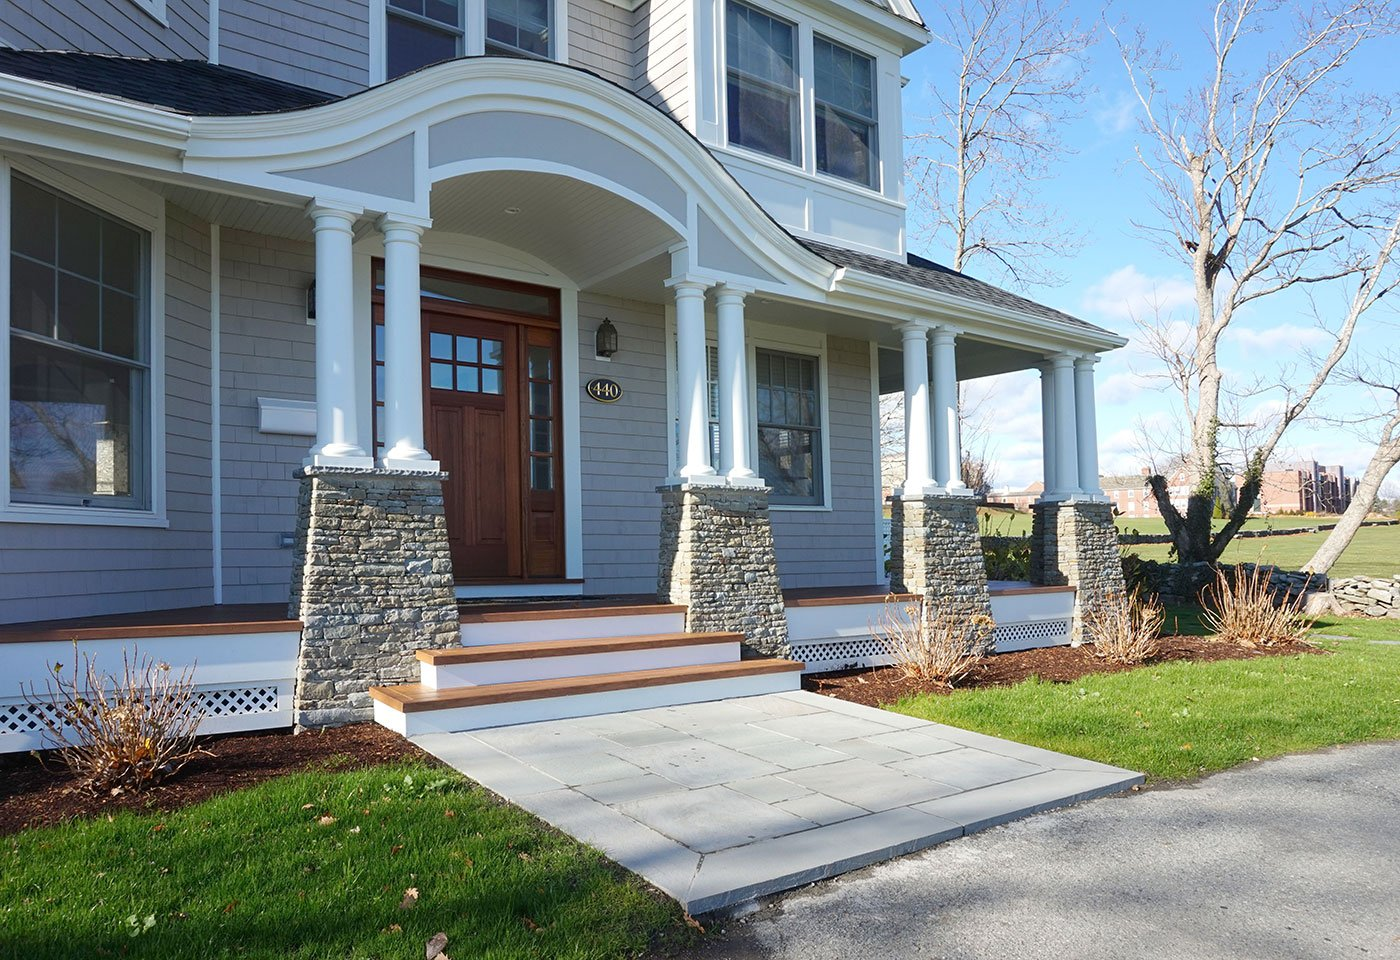 1 Full home remodel project by in house design - construction build firm in RI